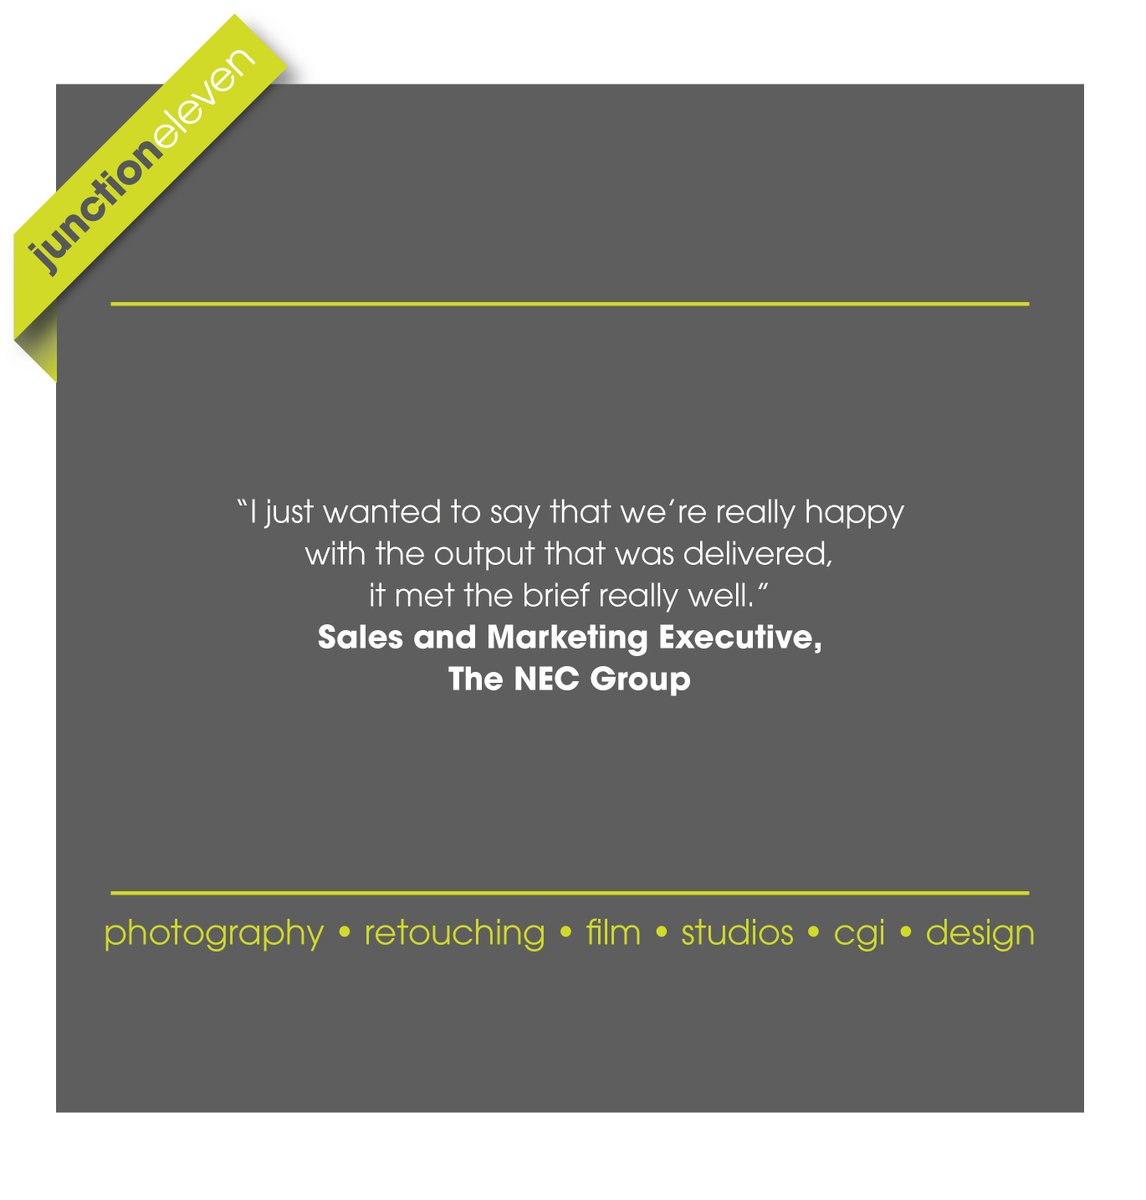 Some nice client feedback following another successful shoot for the NEC Group last month :)  #testimonialtuesday #contentcreators #locationphotography #clientfeedback #NEC #wecreate